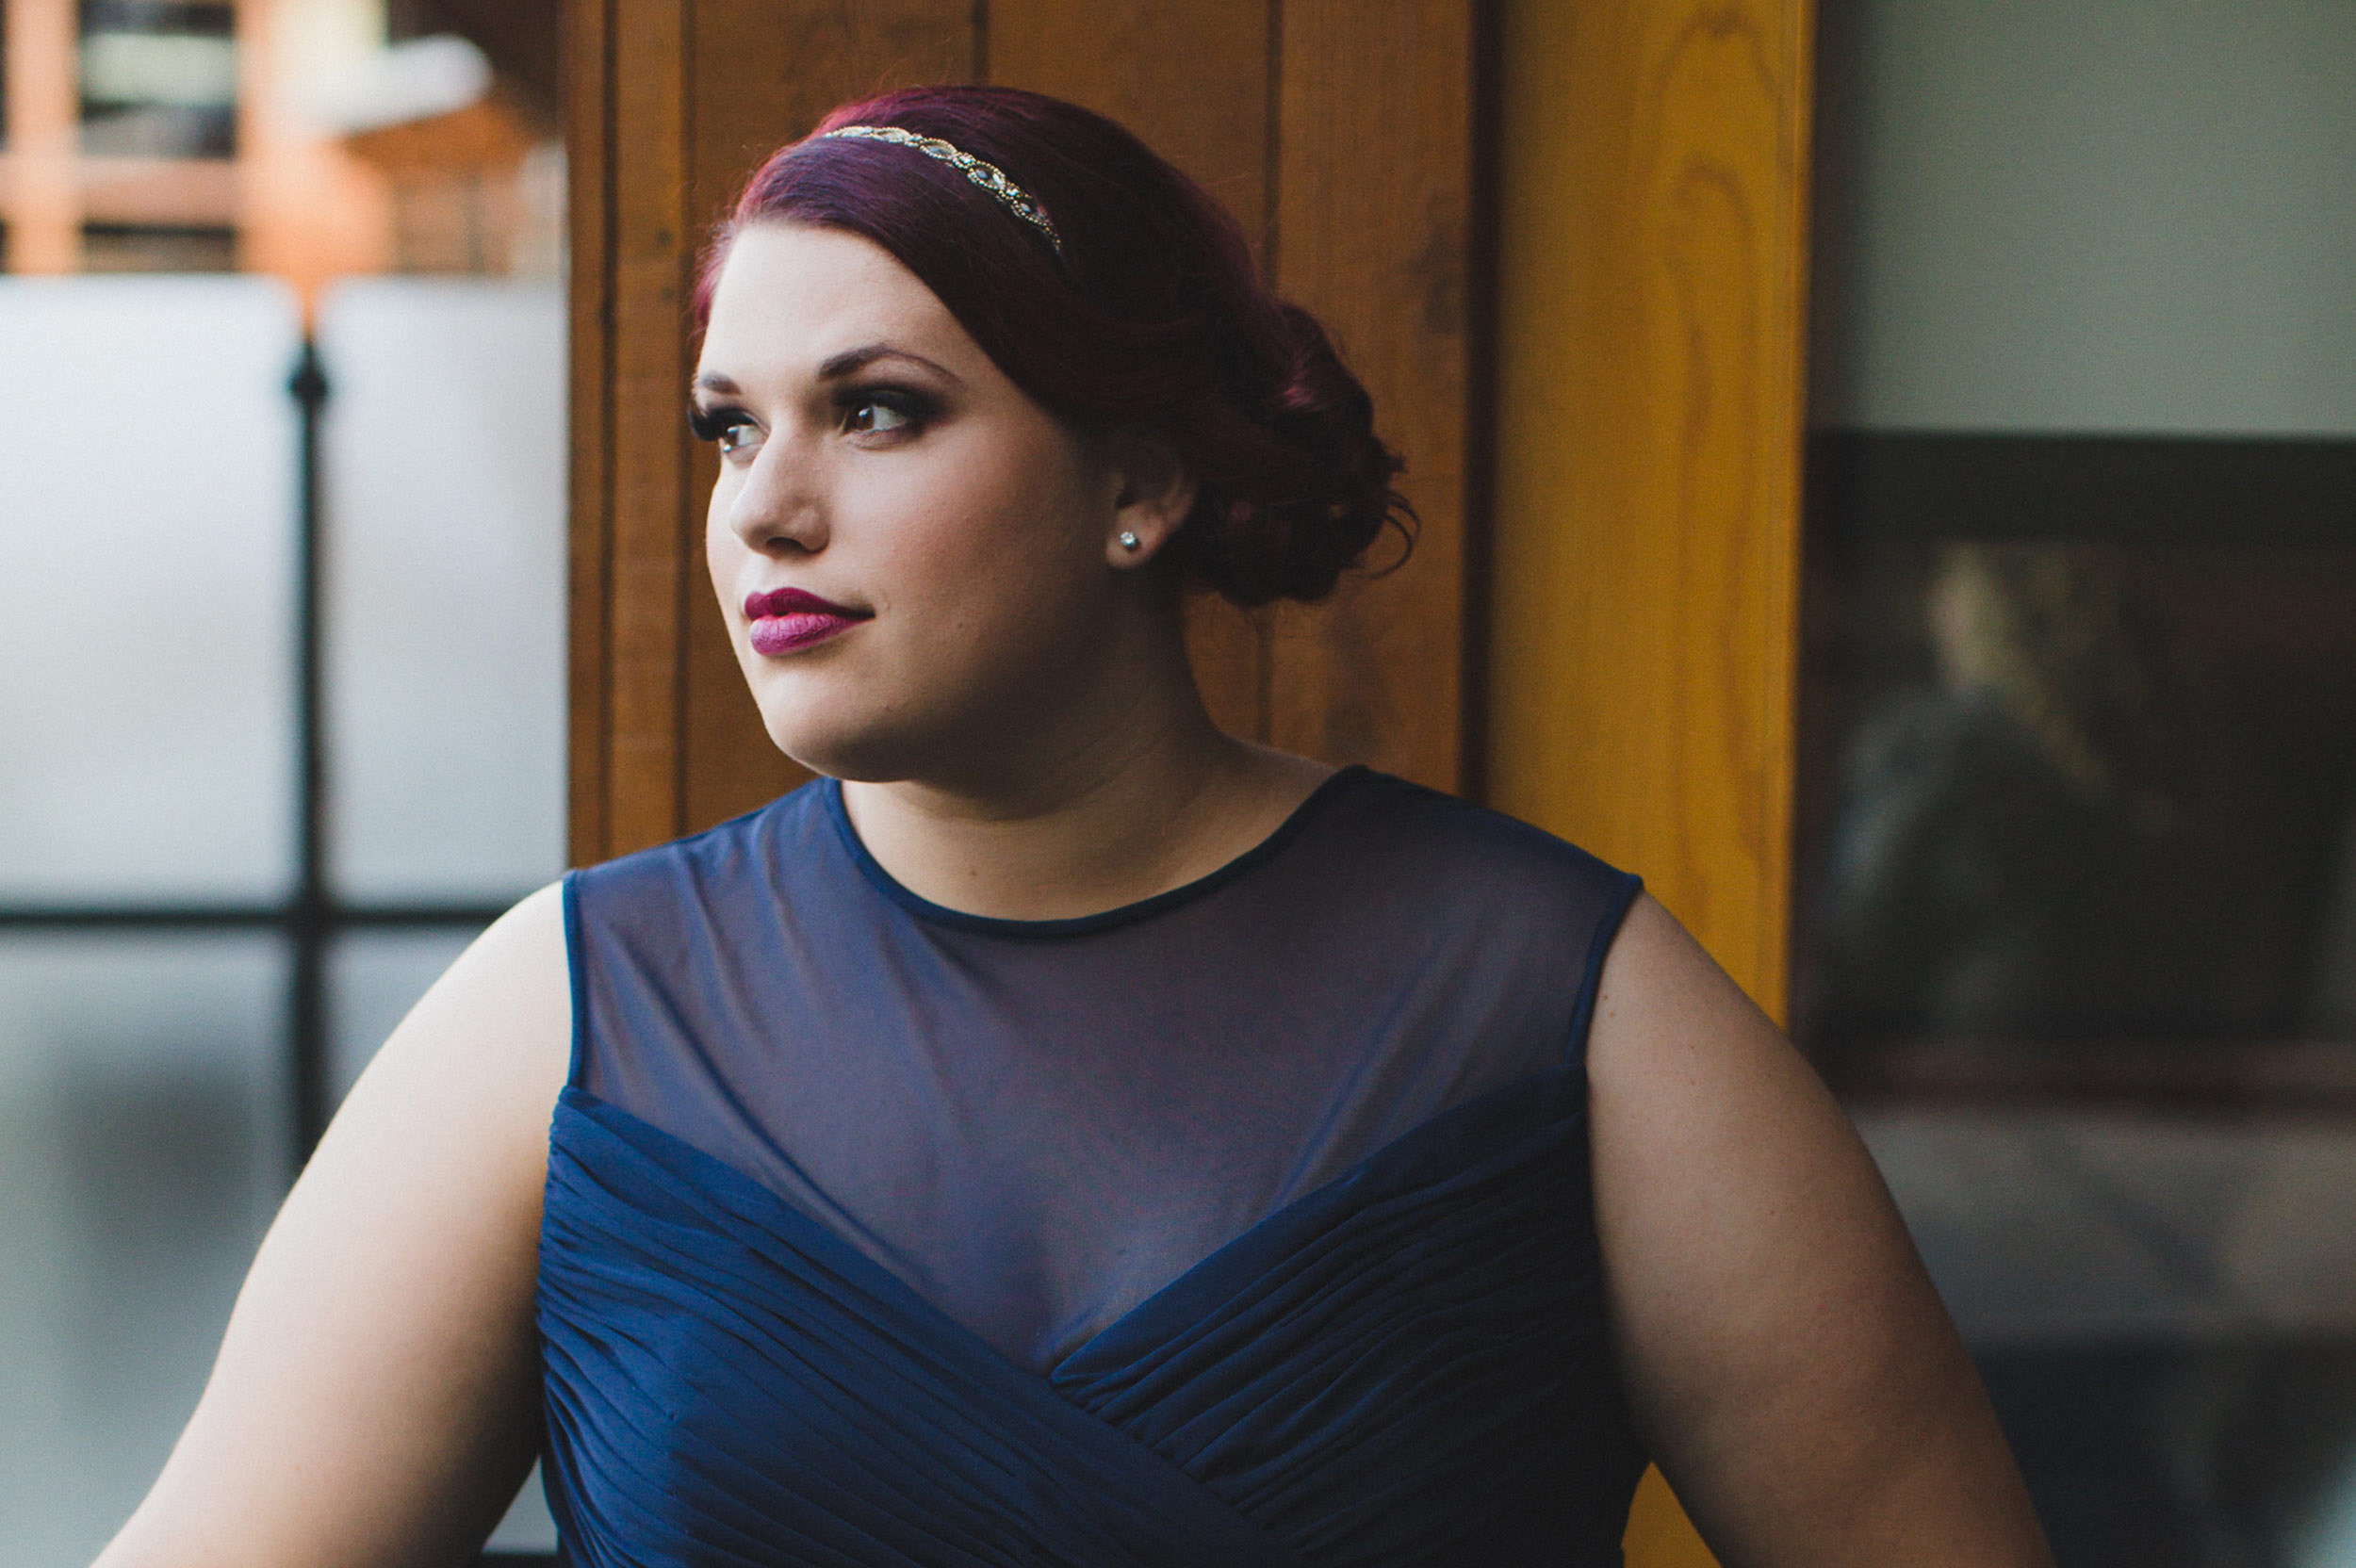 My look the day of my wedding surpassed my expectations, and the girls really helped calm an anxious, picky bride. My bridesmaids and I felt truly beautiful thanks to Artistry by Alexa!